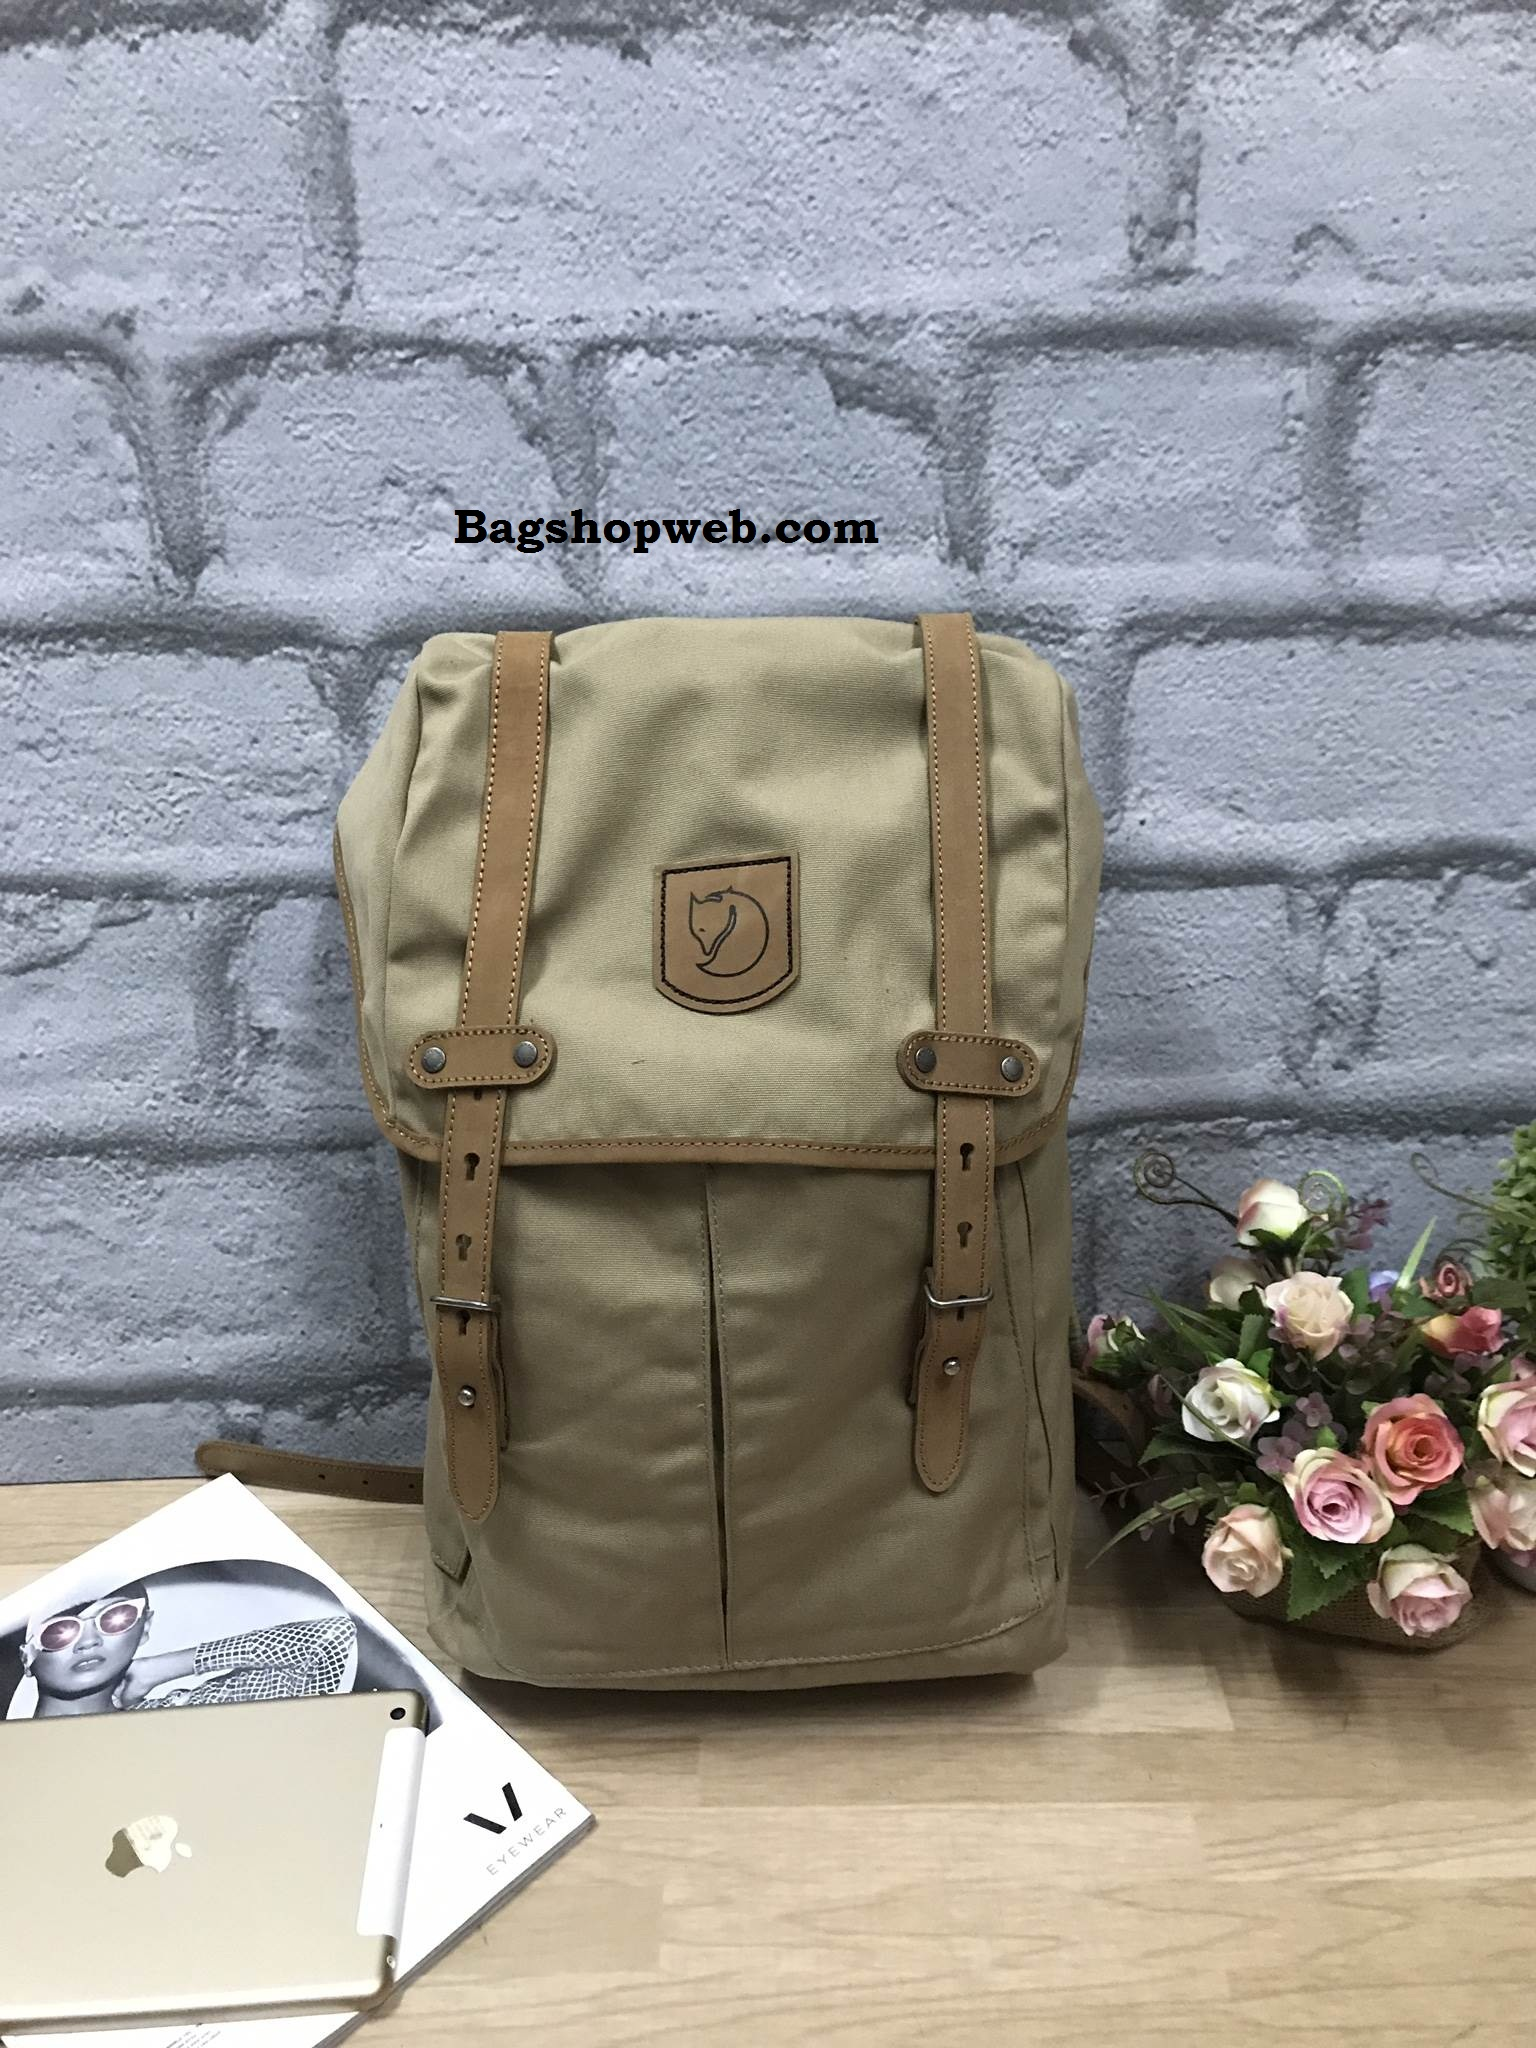 FJALL RAVEN (fertlaben) Rucksack No.21 Medium backpack